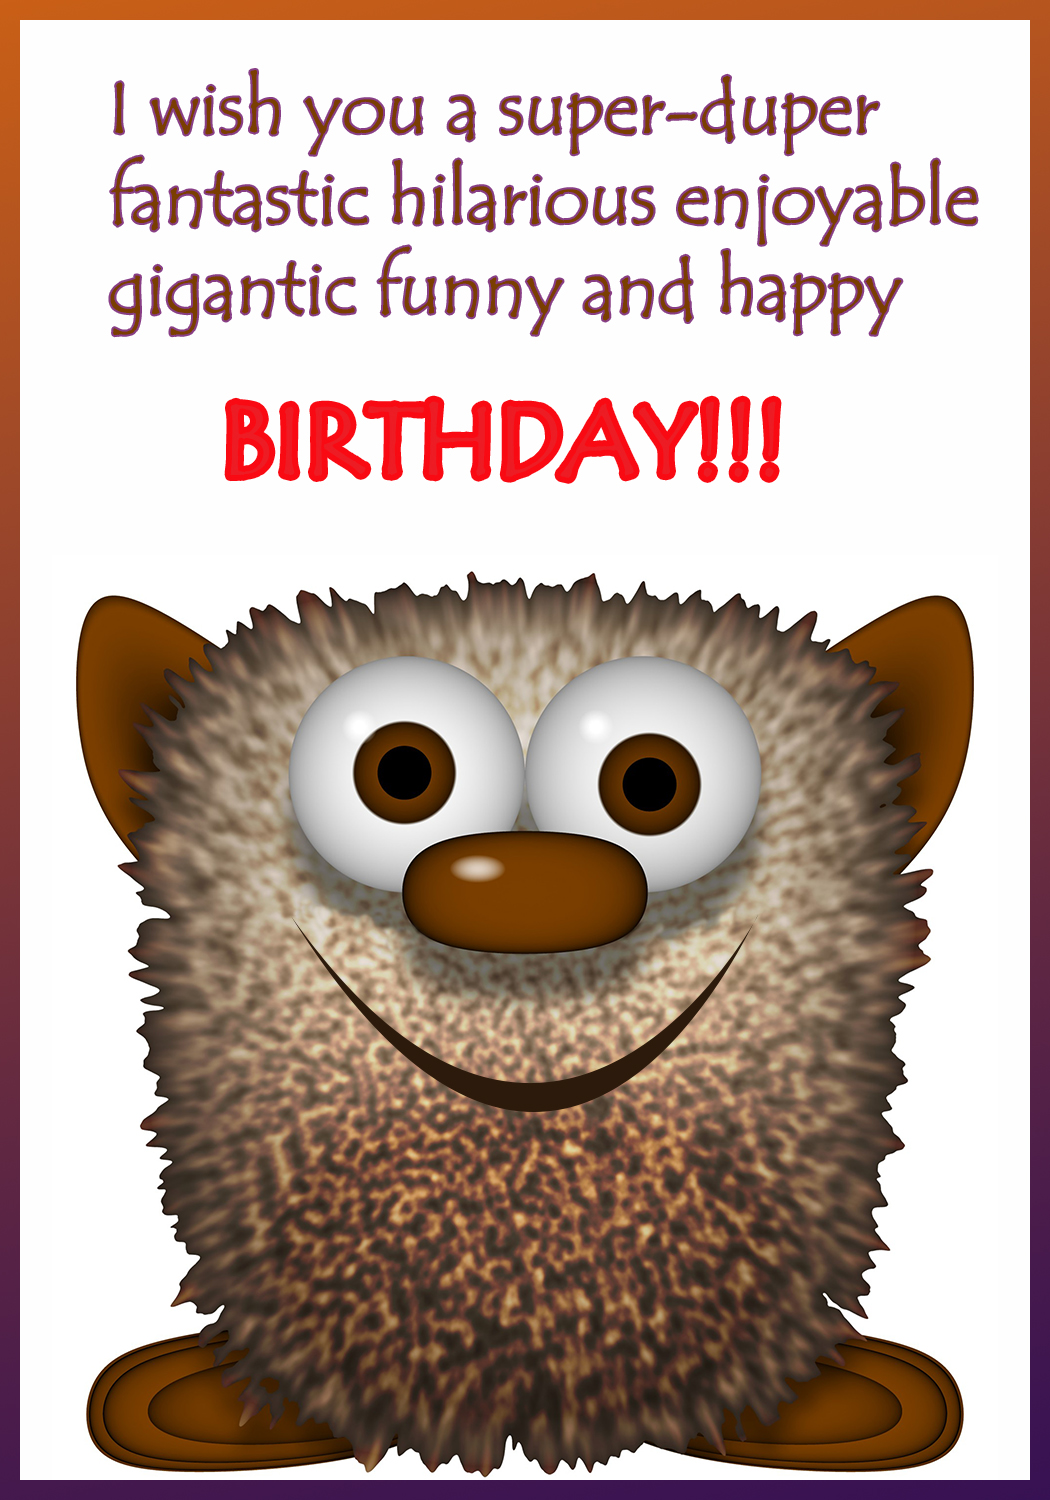 humorous birthday clipart ; funny-monster-birthday-greeting-card